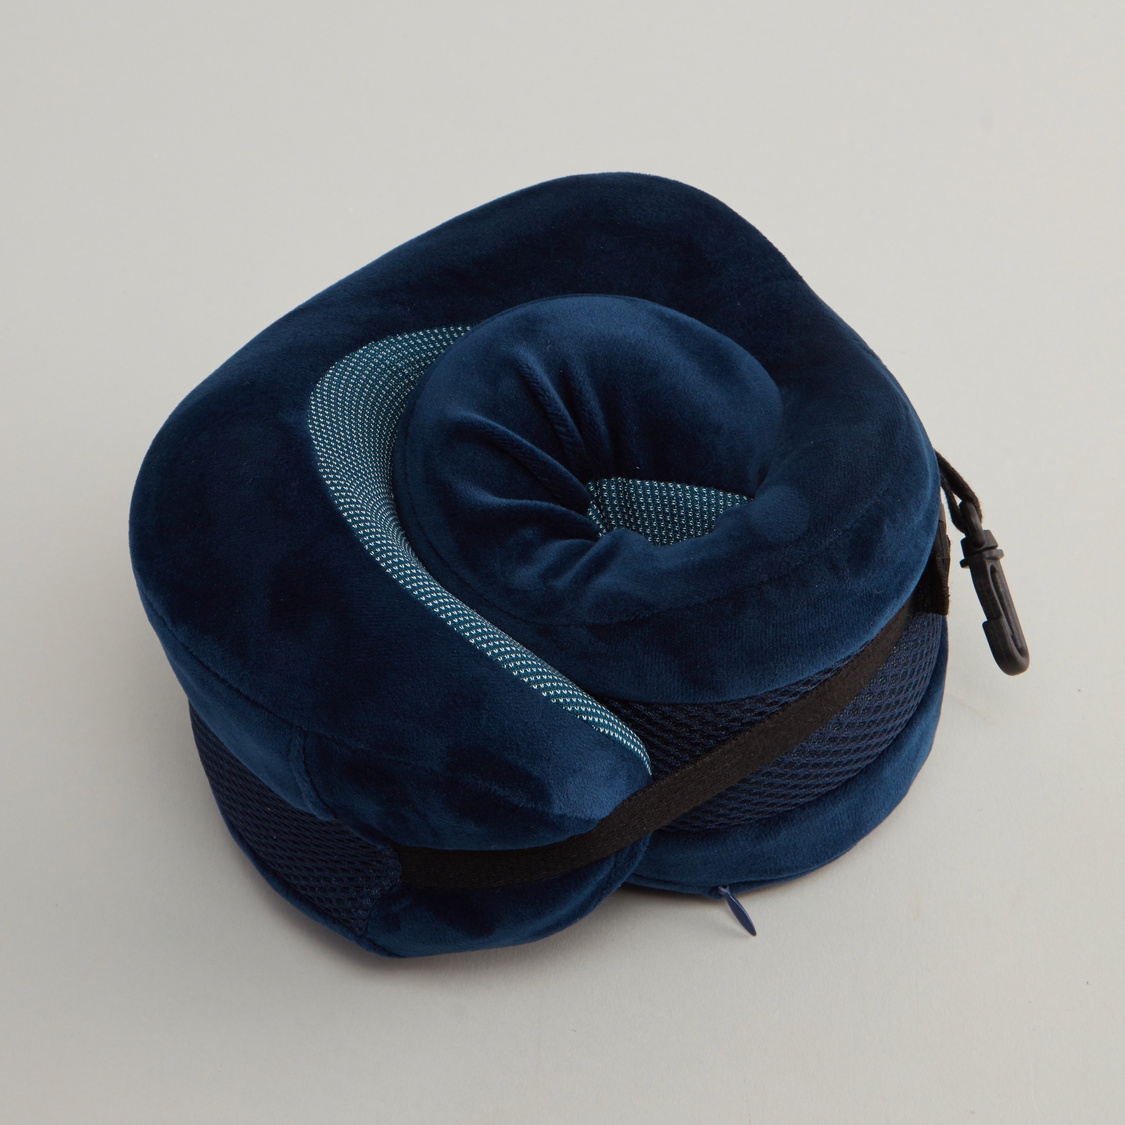 Textured Neck Pillow with Buckle Closure